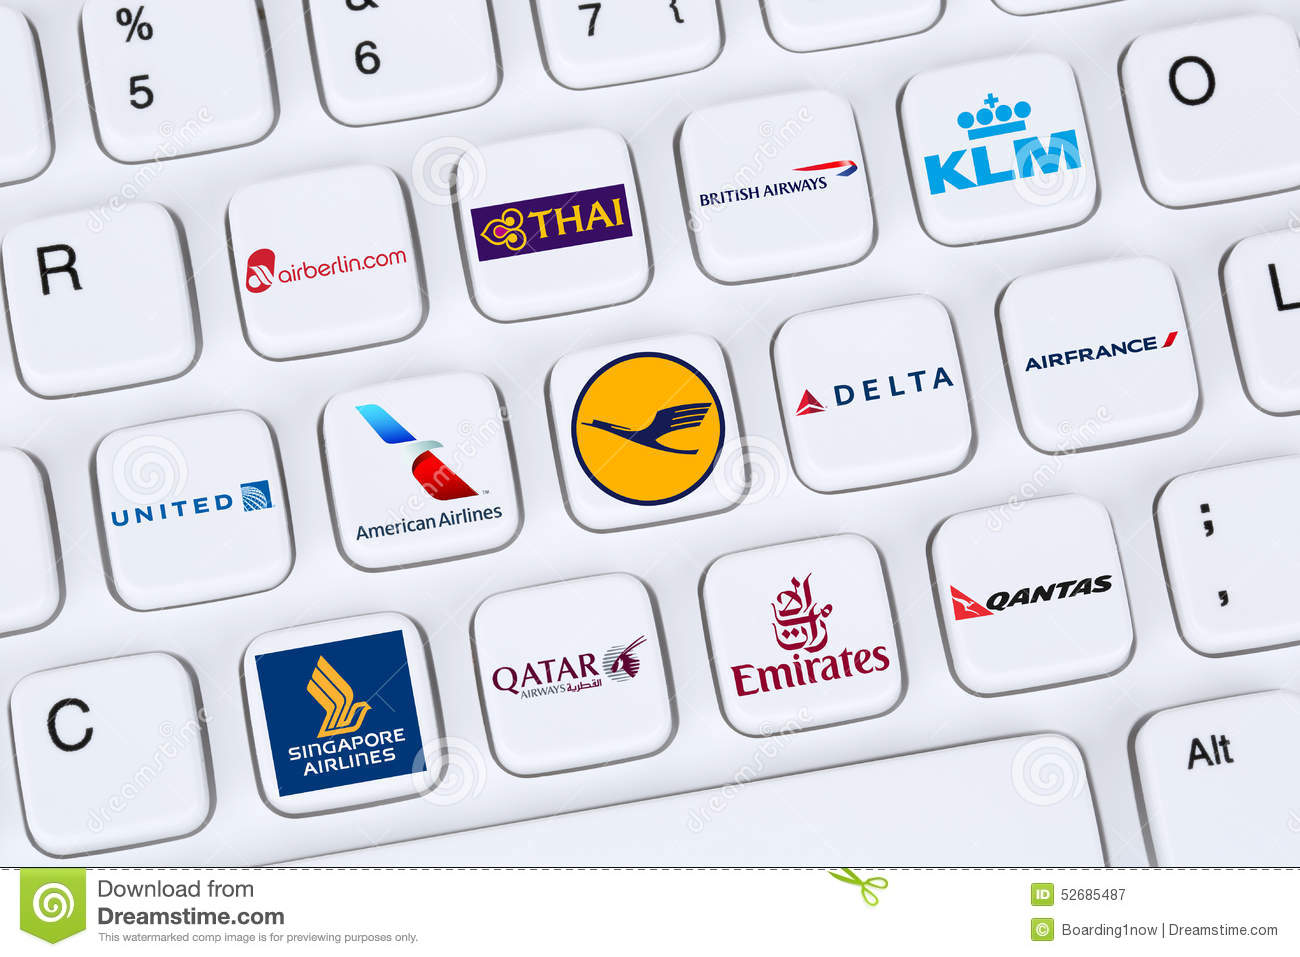 Airlines like American, United, Delta, KLM, Lufthansa, British A